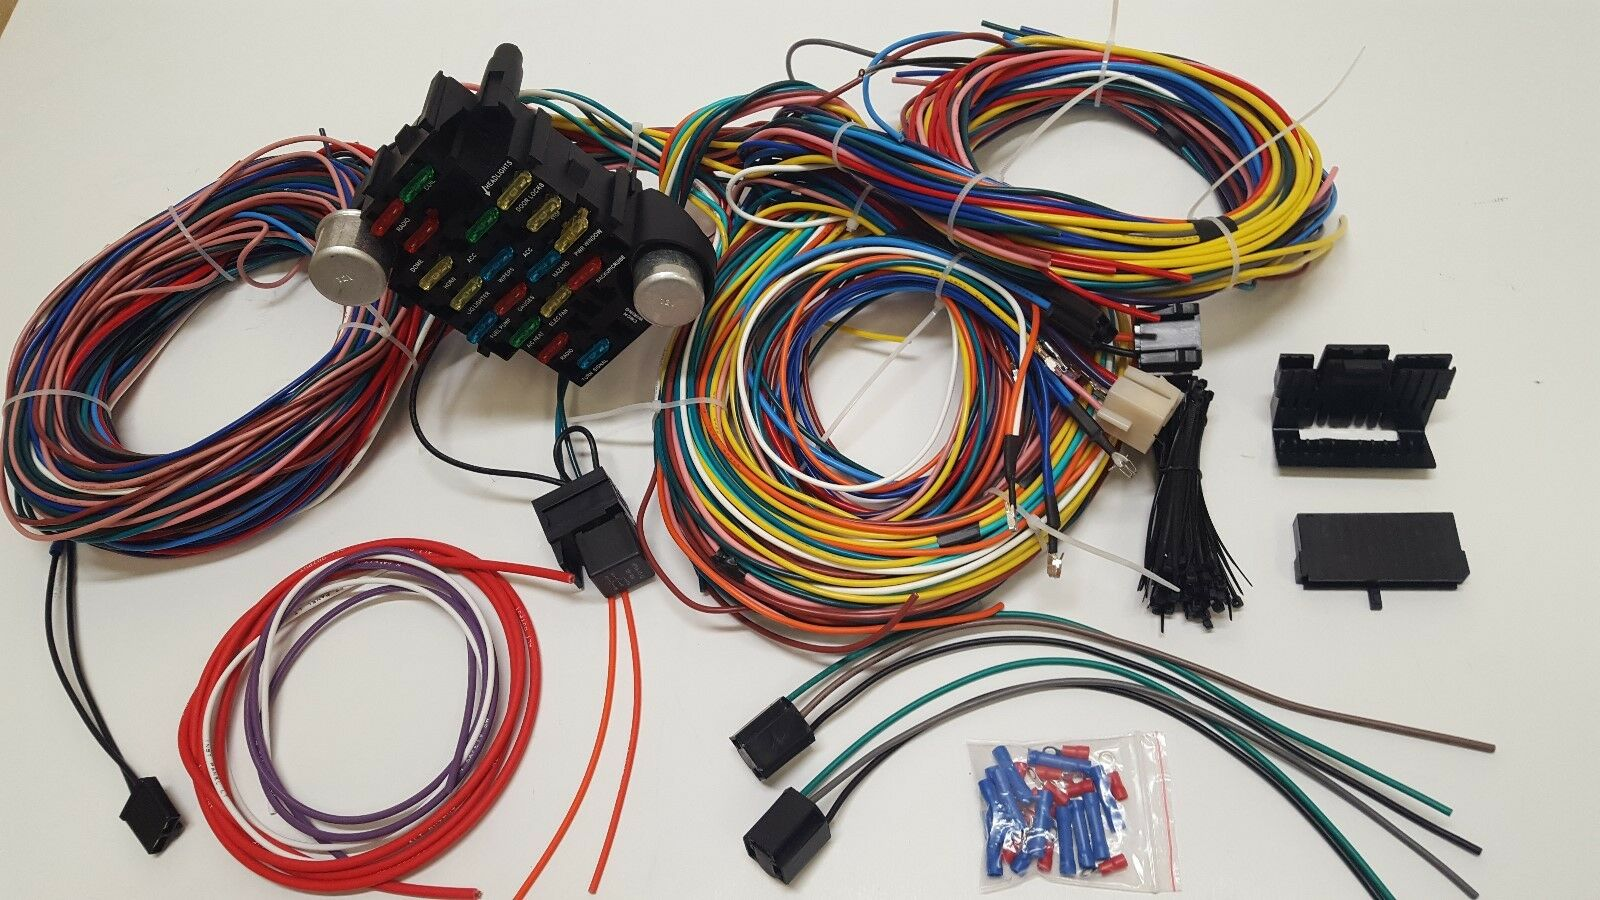 Chevelle Wiring Kit Electrical Diagrams 69 Harness Gearhead 1968 1969 Chevy Universal Wire Basic Motorcycle Diagram